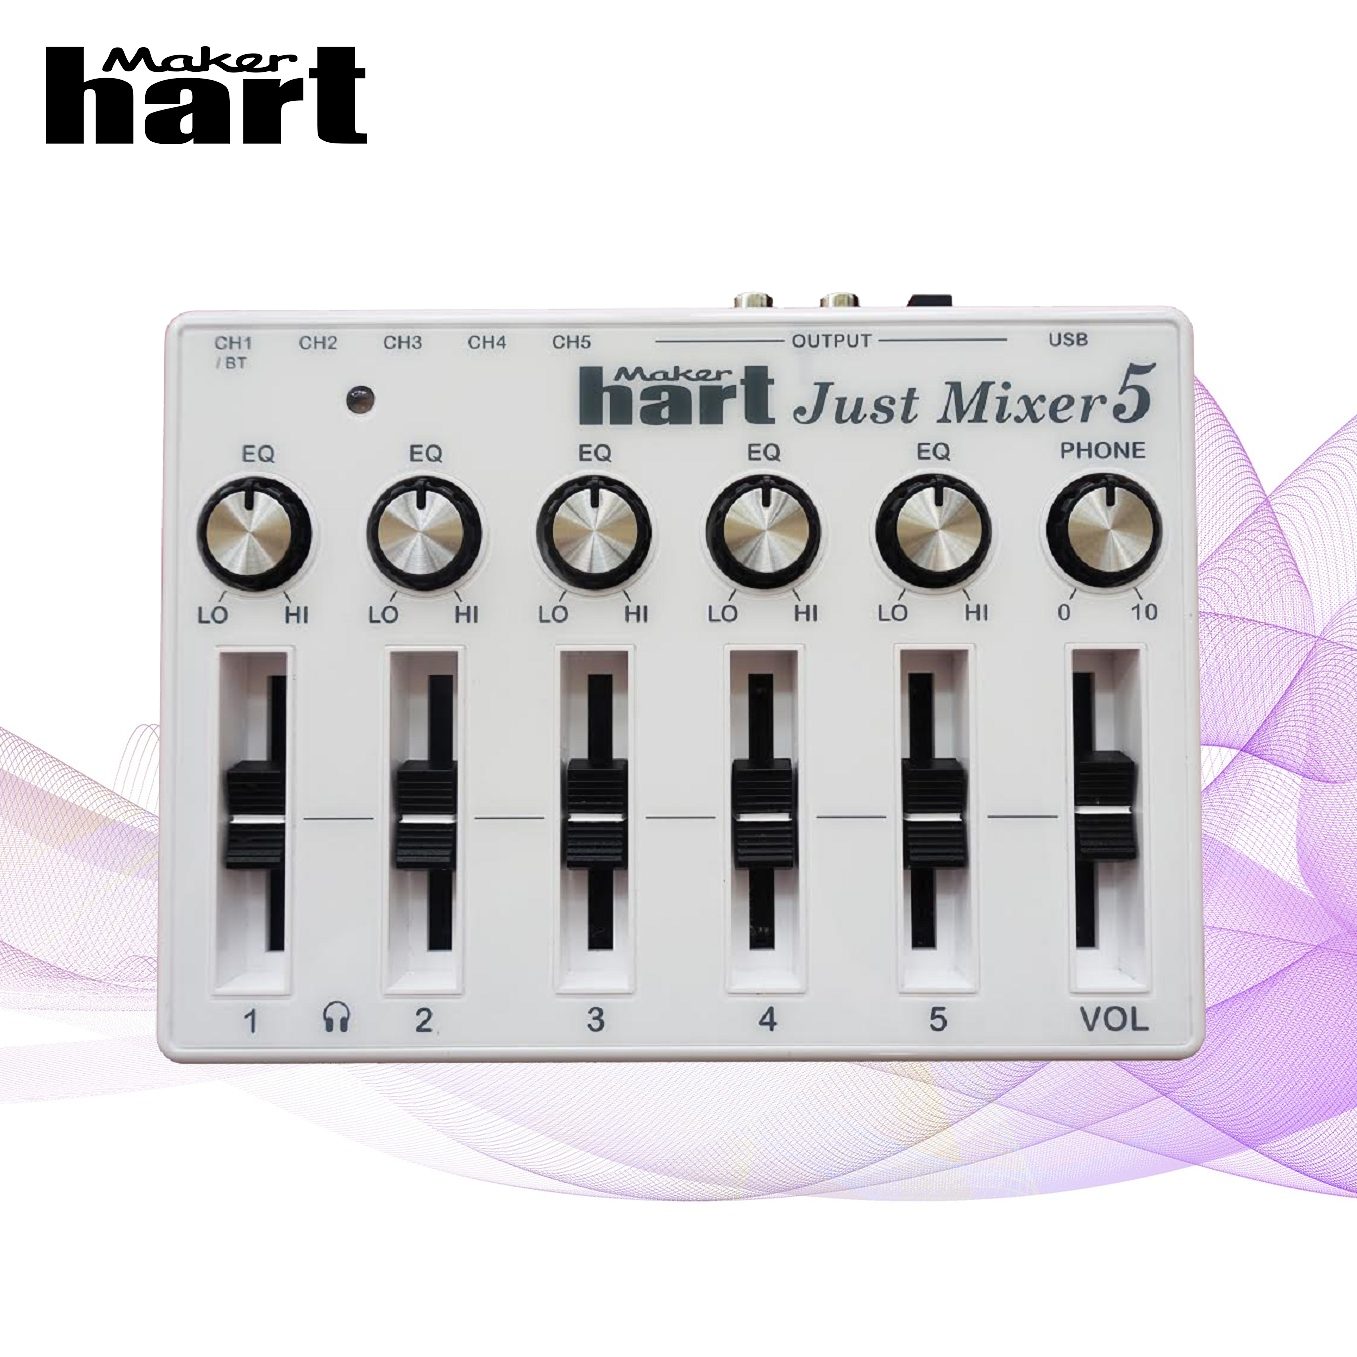 Just Mixer 2 Silver 220V-240V small mixing console mini audio mixer